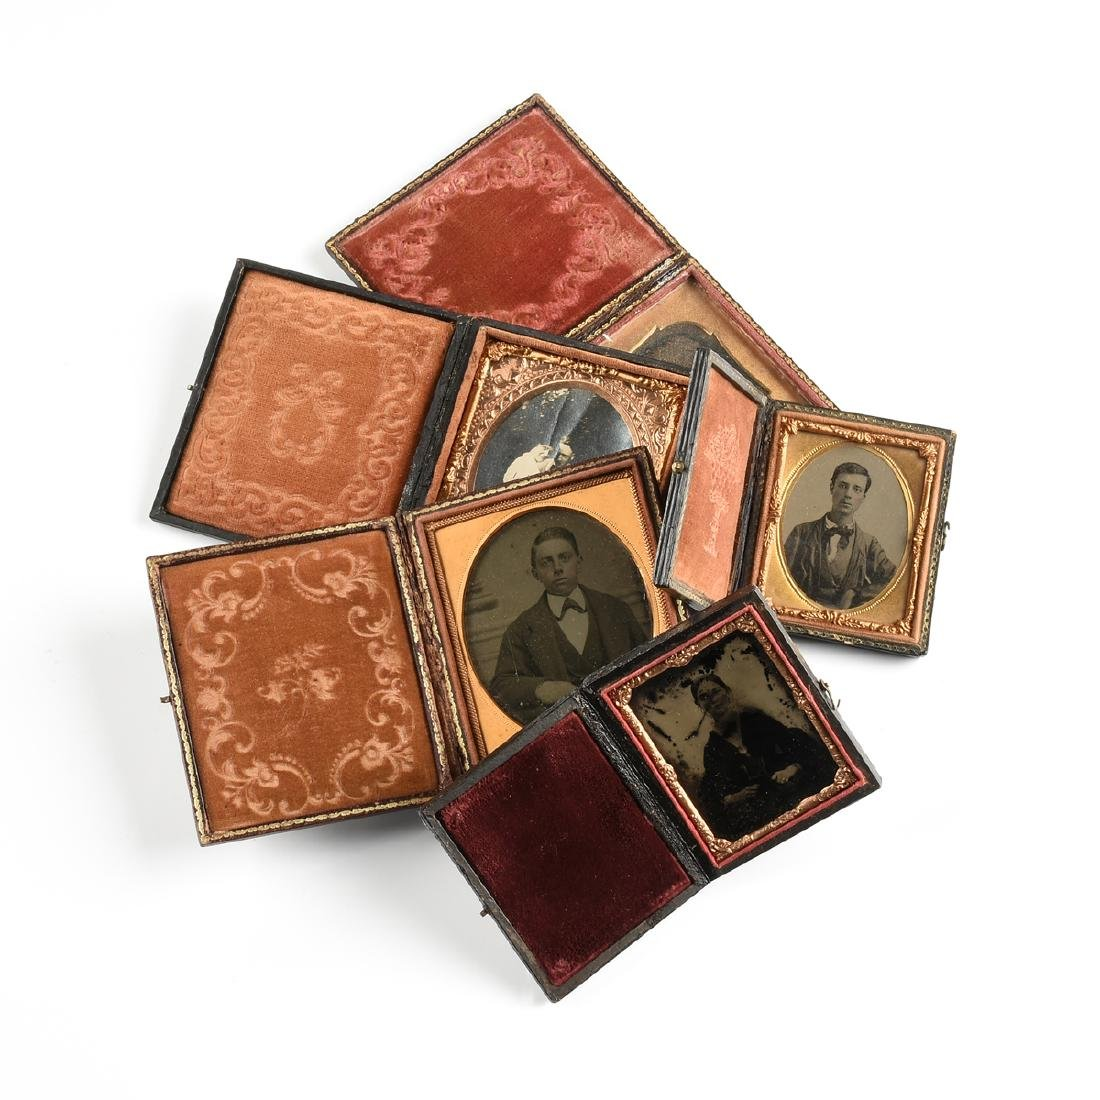 A GROUP OF FIVE EARLY PHOTOGRAPHIC PORTRAITS IN LEATHER